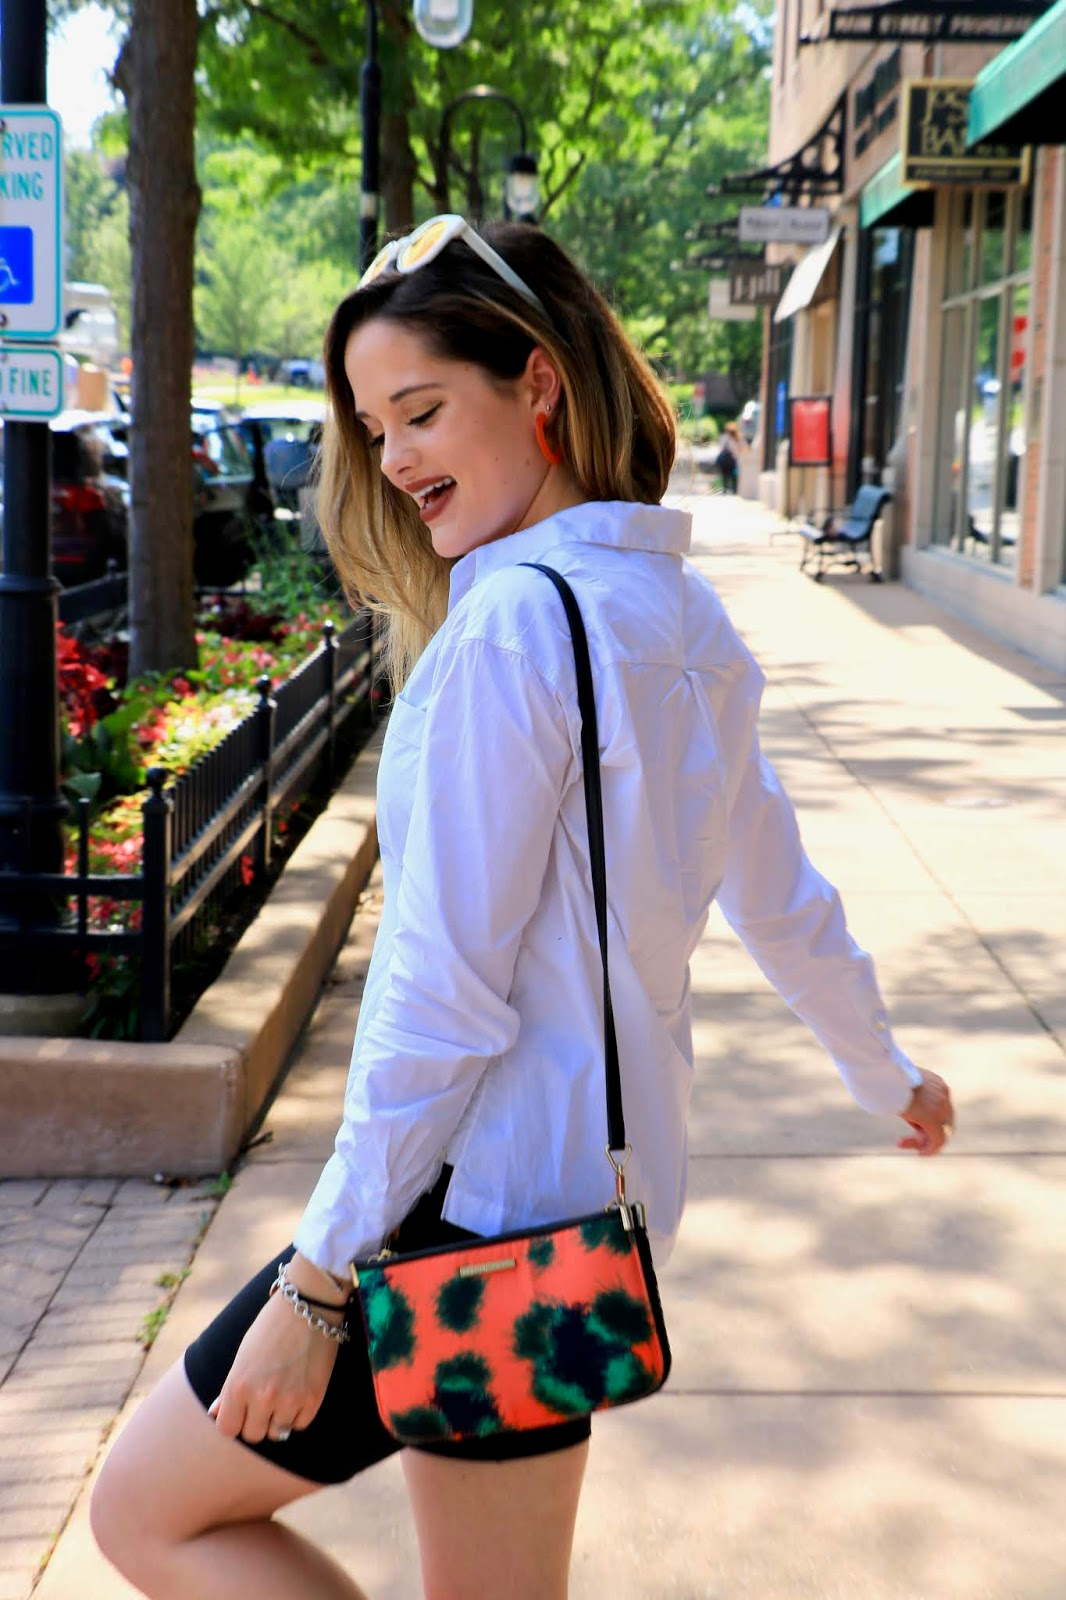 Nyc fashion blogger Kathleen Harper wearing a white blouse summer outfit.